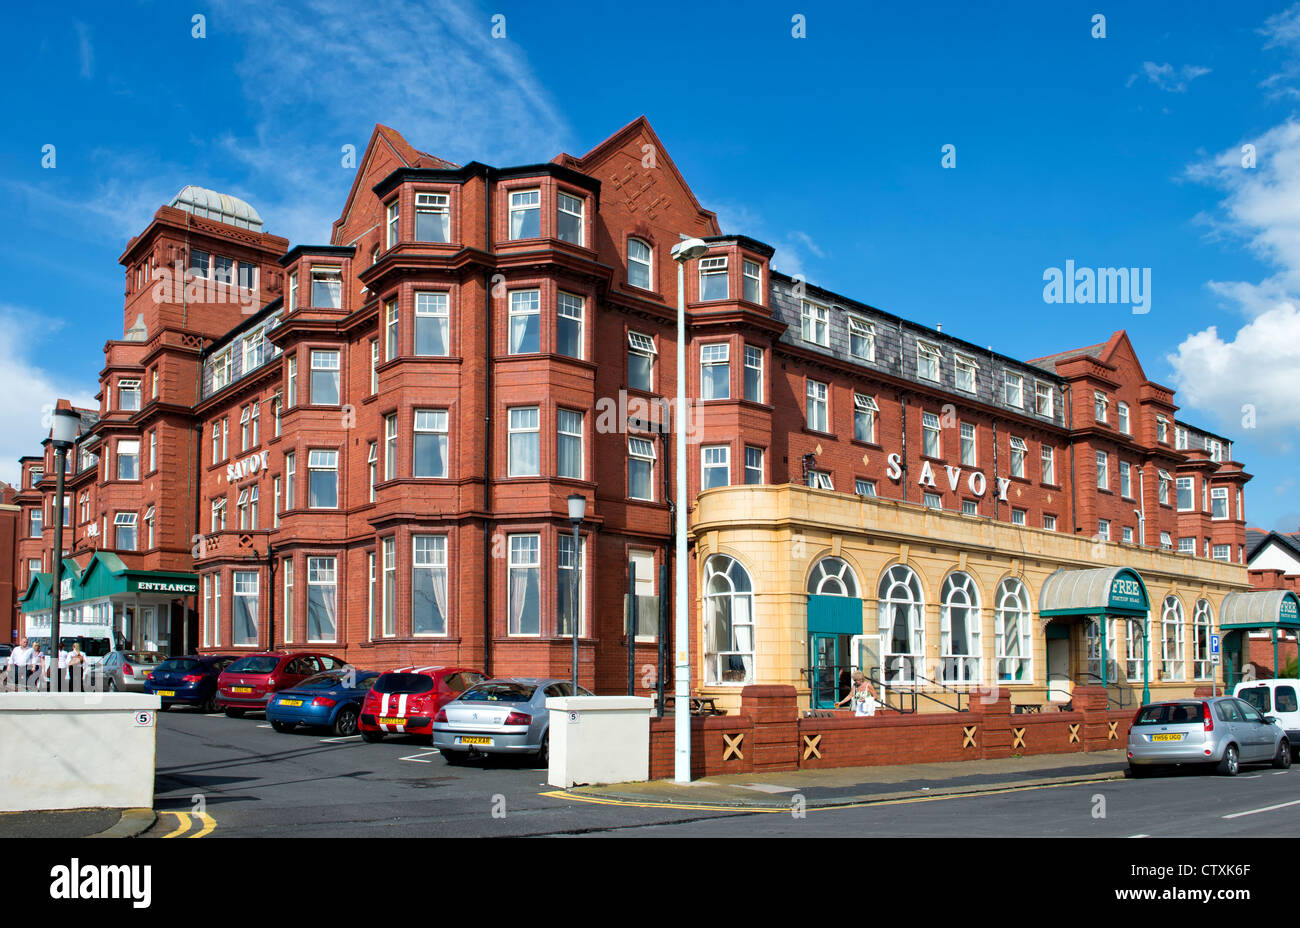 Savoy Hotel on the seafront in Blackpool, Lancashire - Stock Image